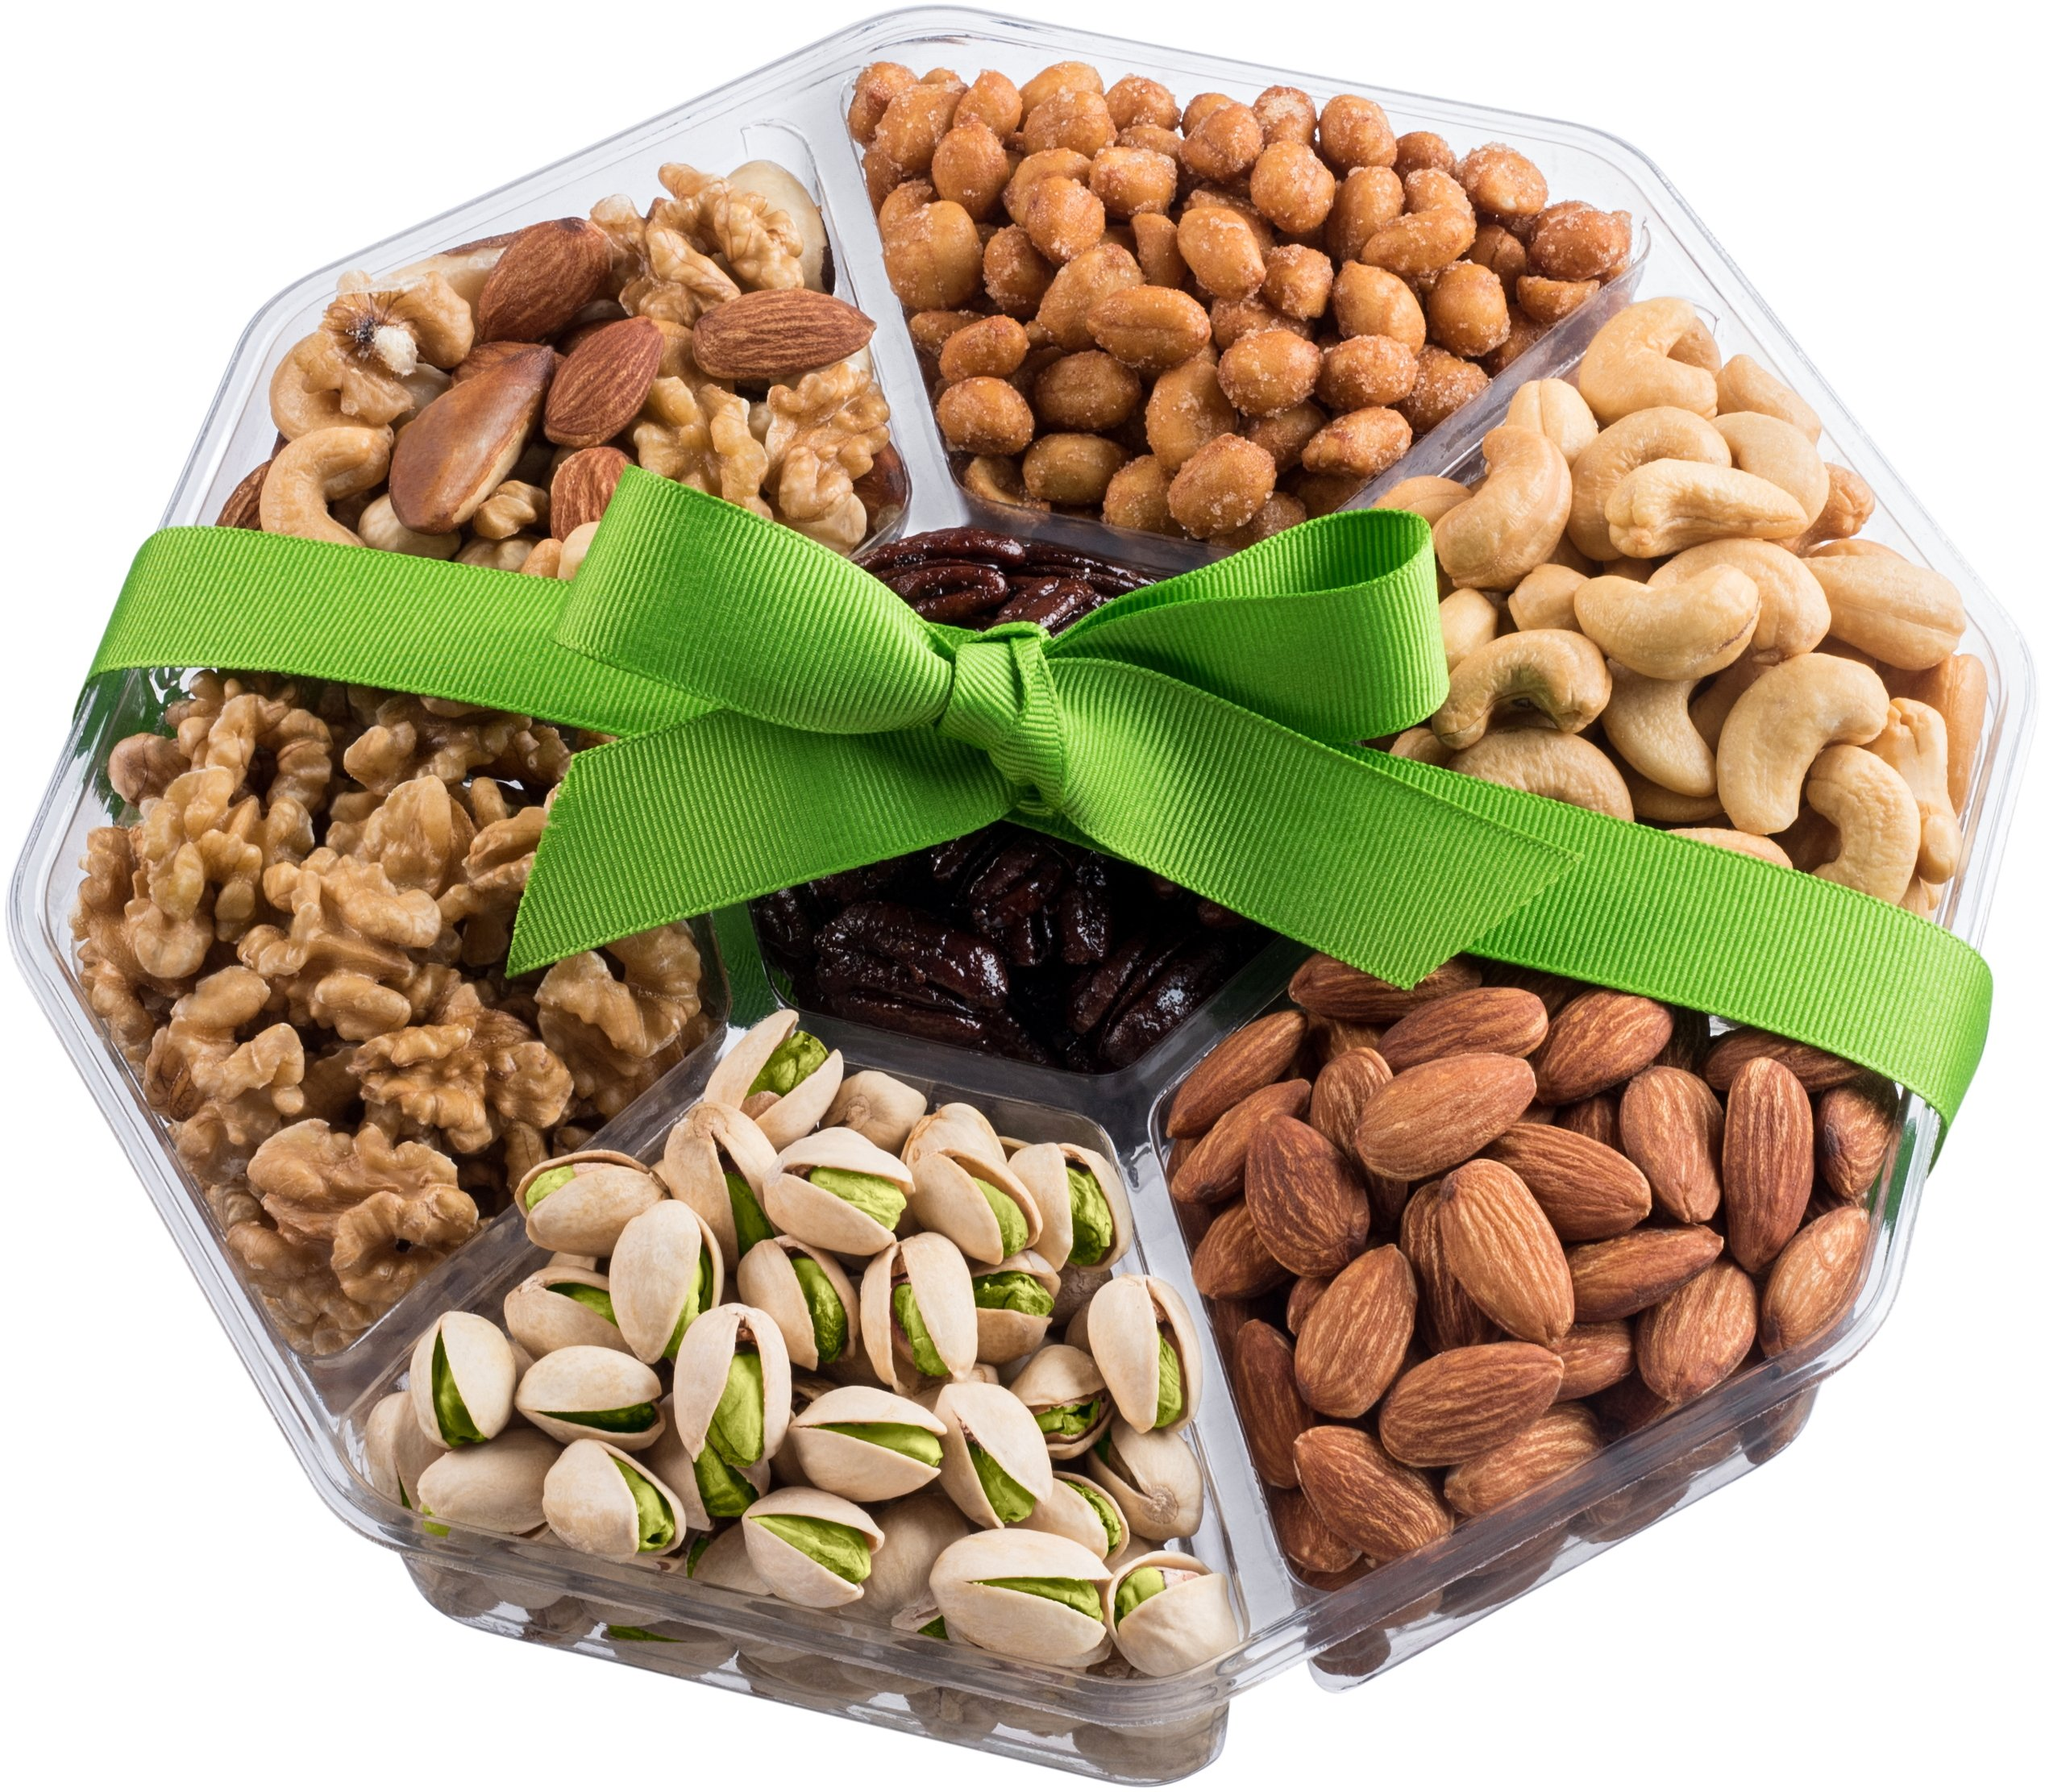 Mother's Day Nuts Gift Basket | Extra-Large 7-Sectional Delicious Variety Mixed Nuts Prime Gift | Healthy Fresh Gift Idea For Christmas, Thanksgiving, Mothers & Fathers Day